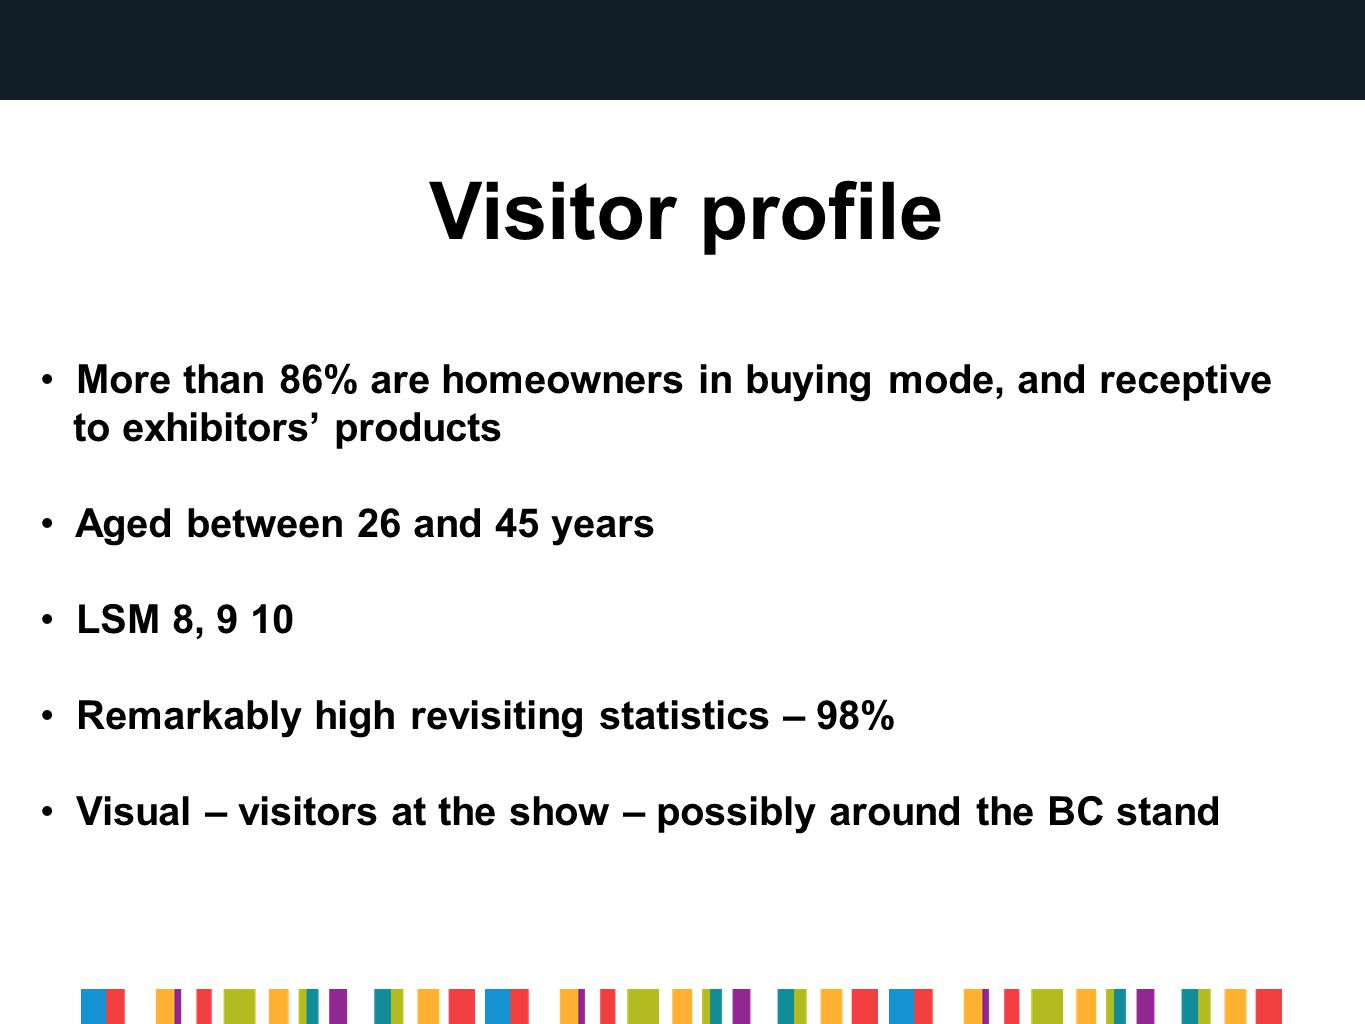 Visitor profile More than 86% are homeowners in buying mode, and receptive to exhibitors' products Aged between 26 and 45 years LSM 8, 9 10 Remarkably high revisiting statistics – 98% Visual – visitors at the show – possibly around the BC stand